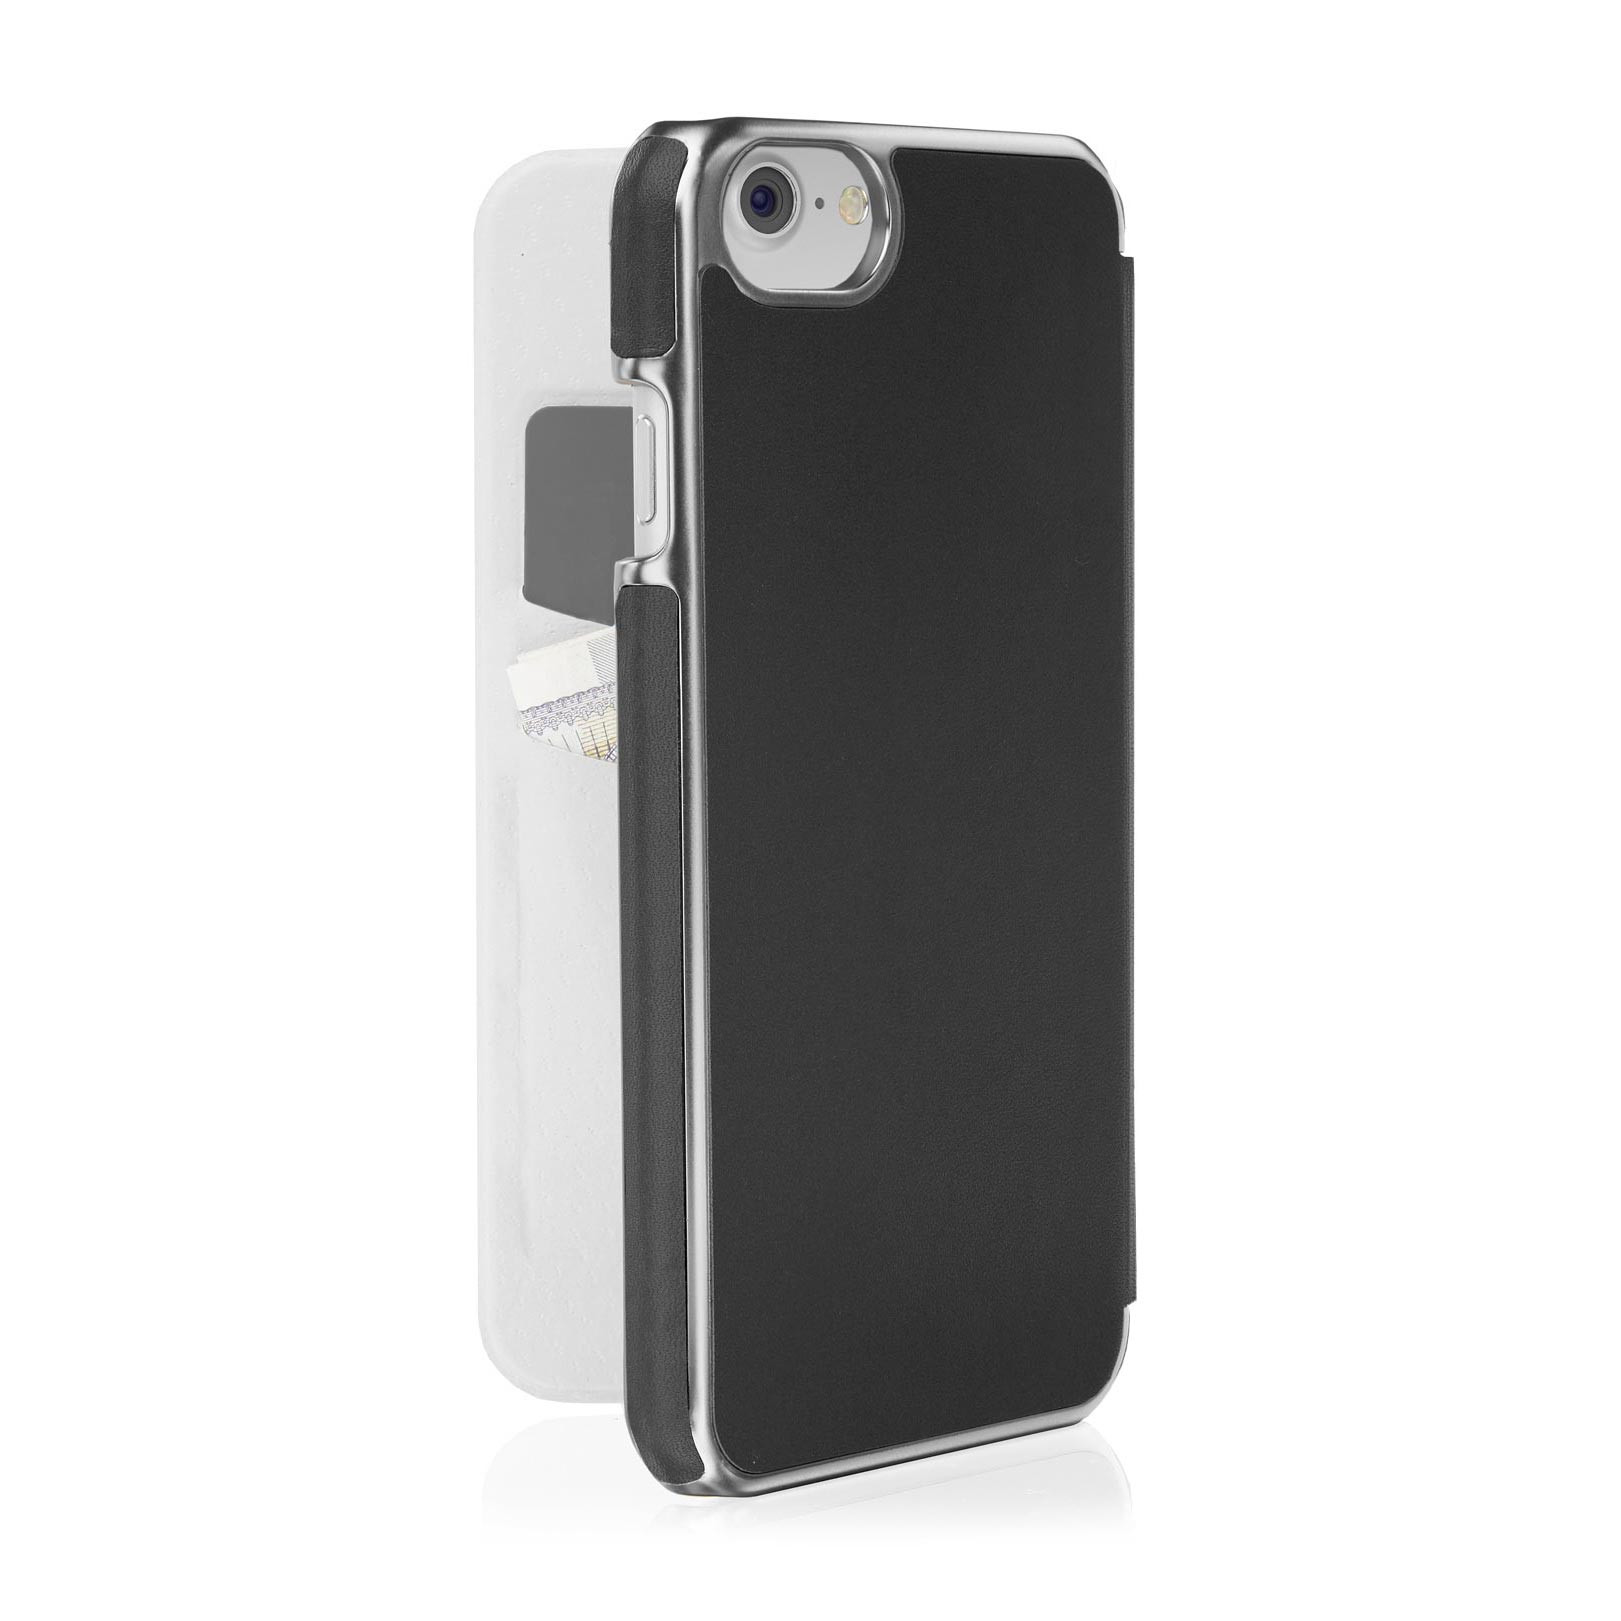 super popular 0d5b5 58bf0 iPhone 8 Slim Wallet Case - Black (Also Fits iPhone 6/6S/7)